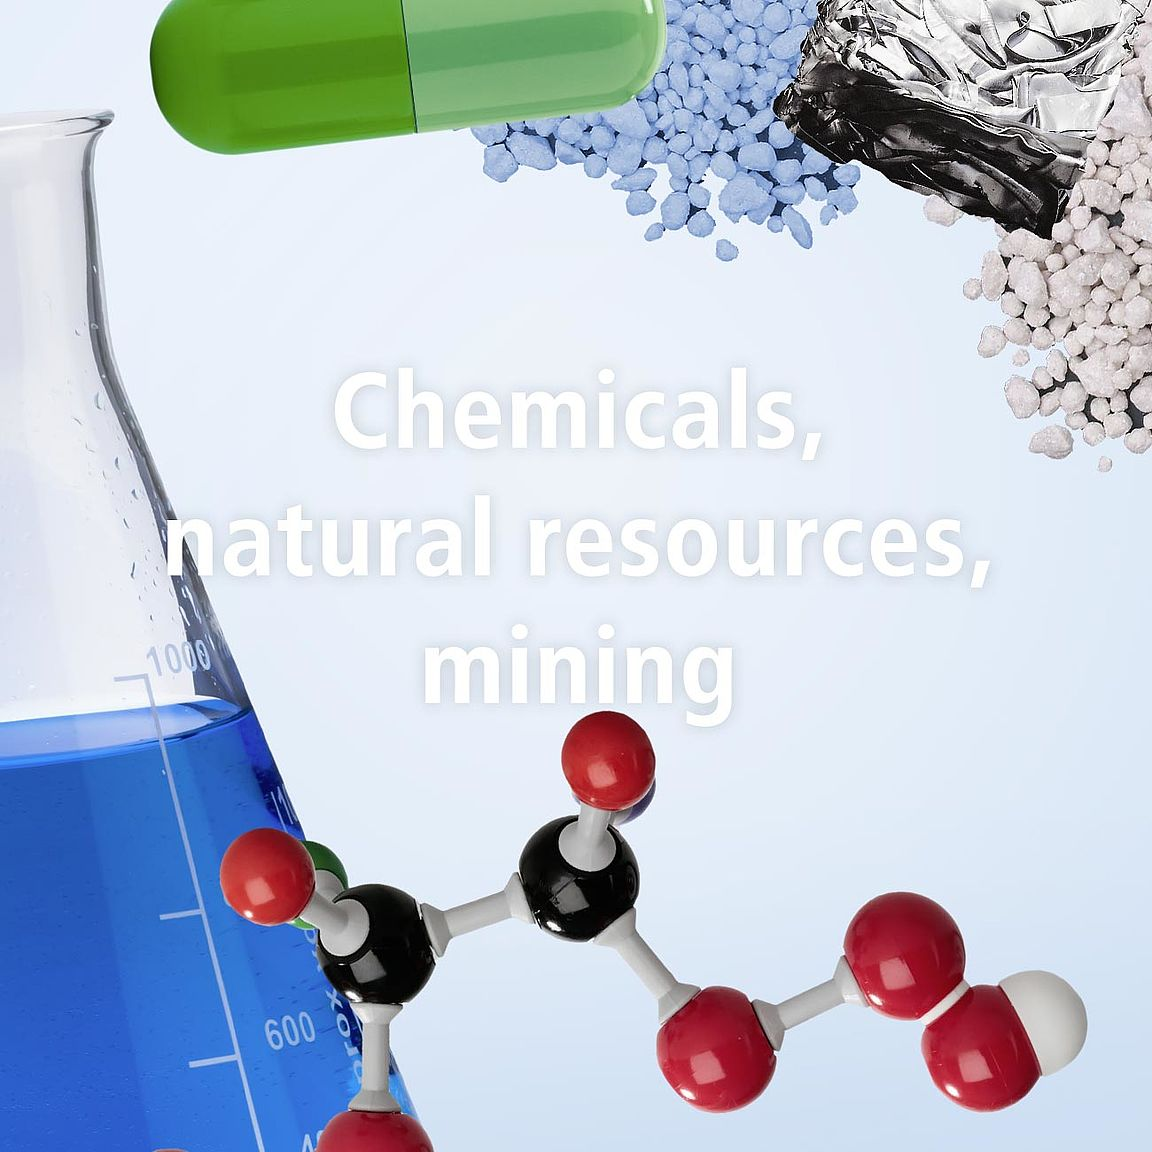 Chemicals, natural resources, mining